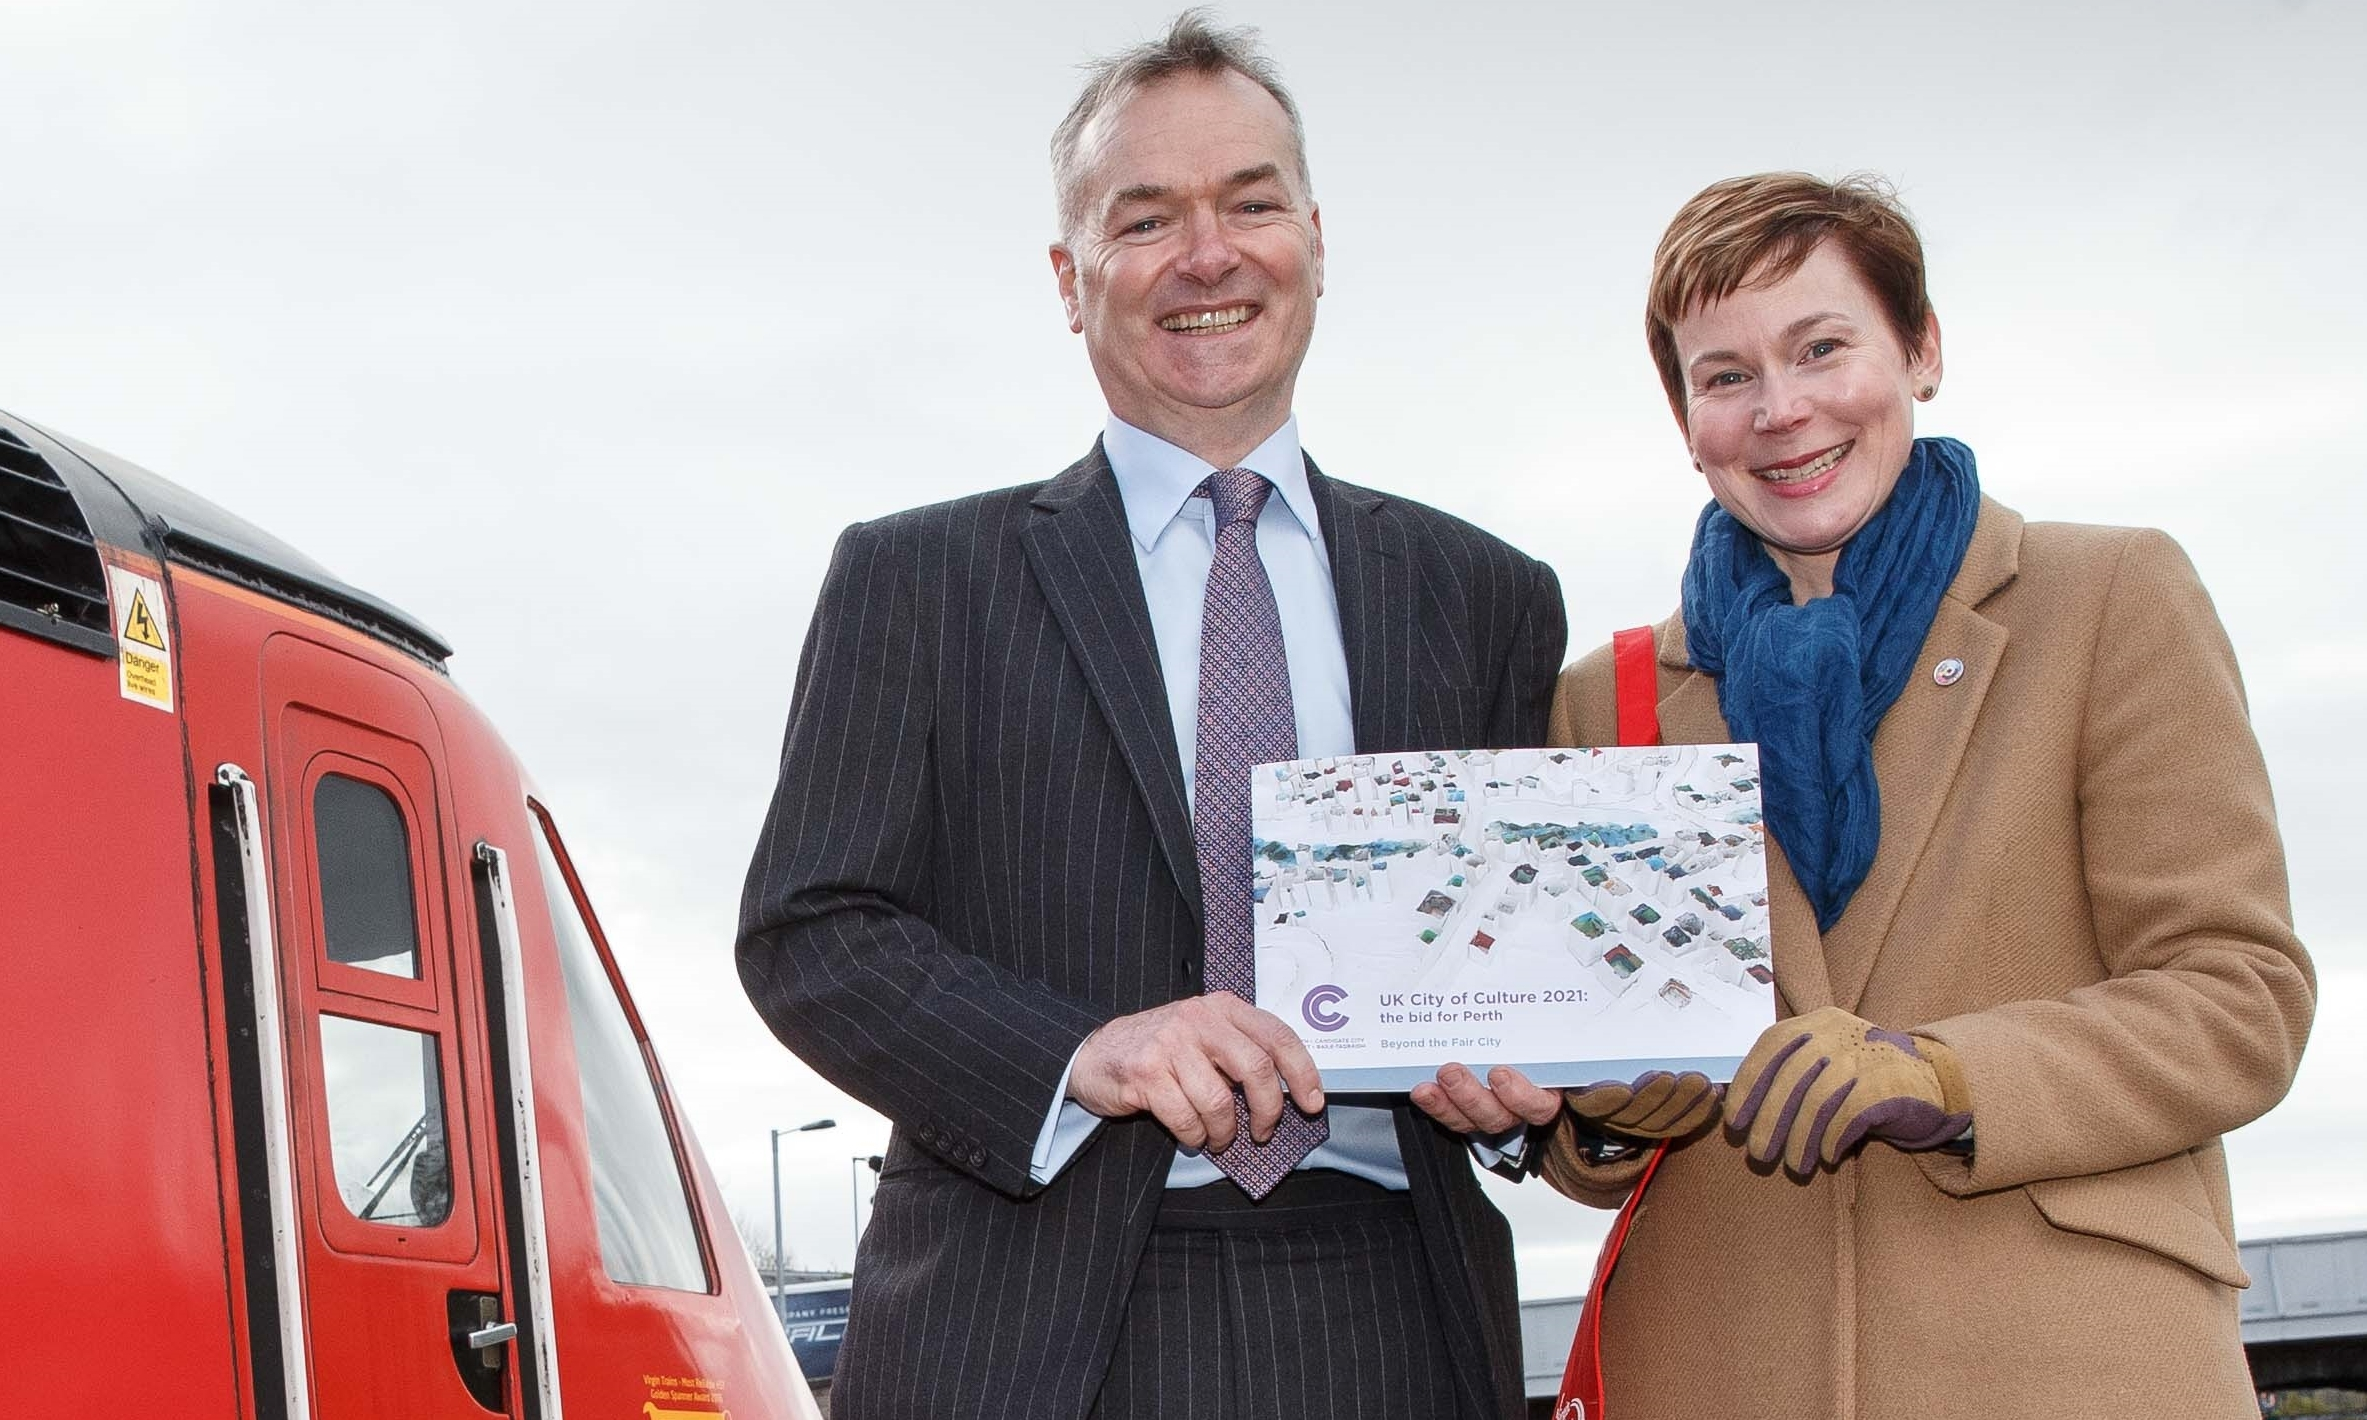 Stagecoach chief executive Martin Griffiths and bid leader Fiona Henderson.